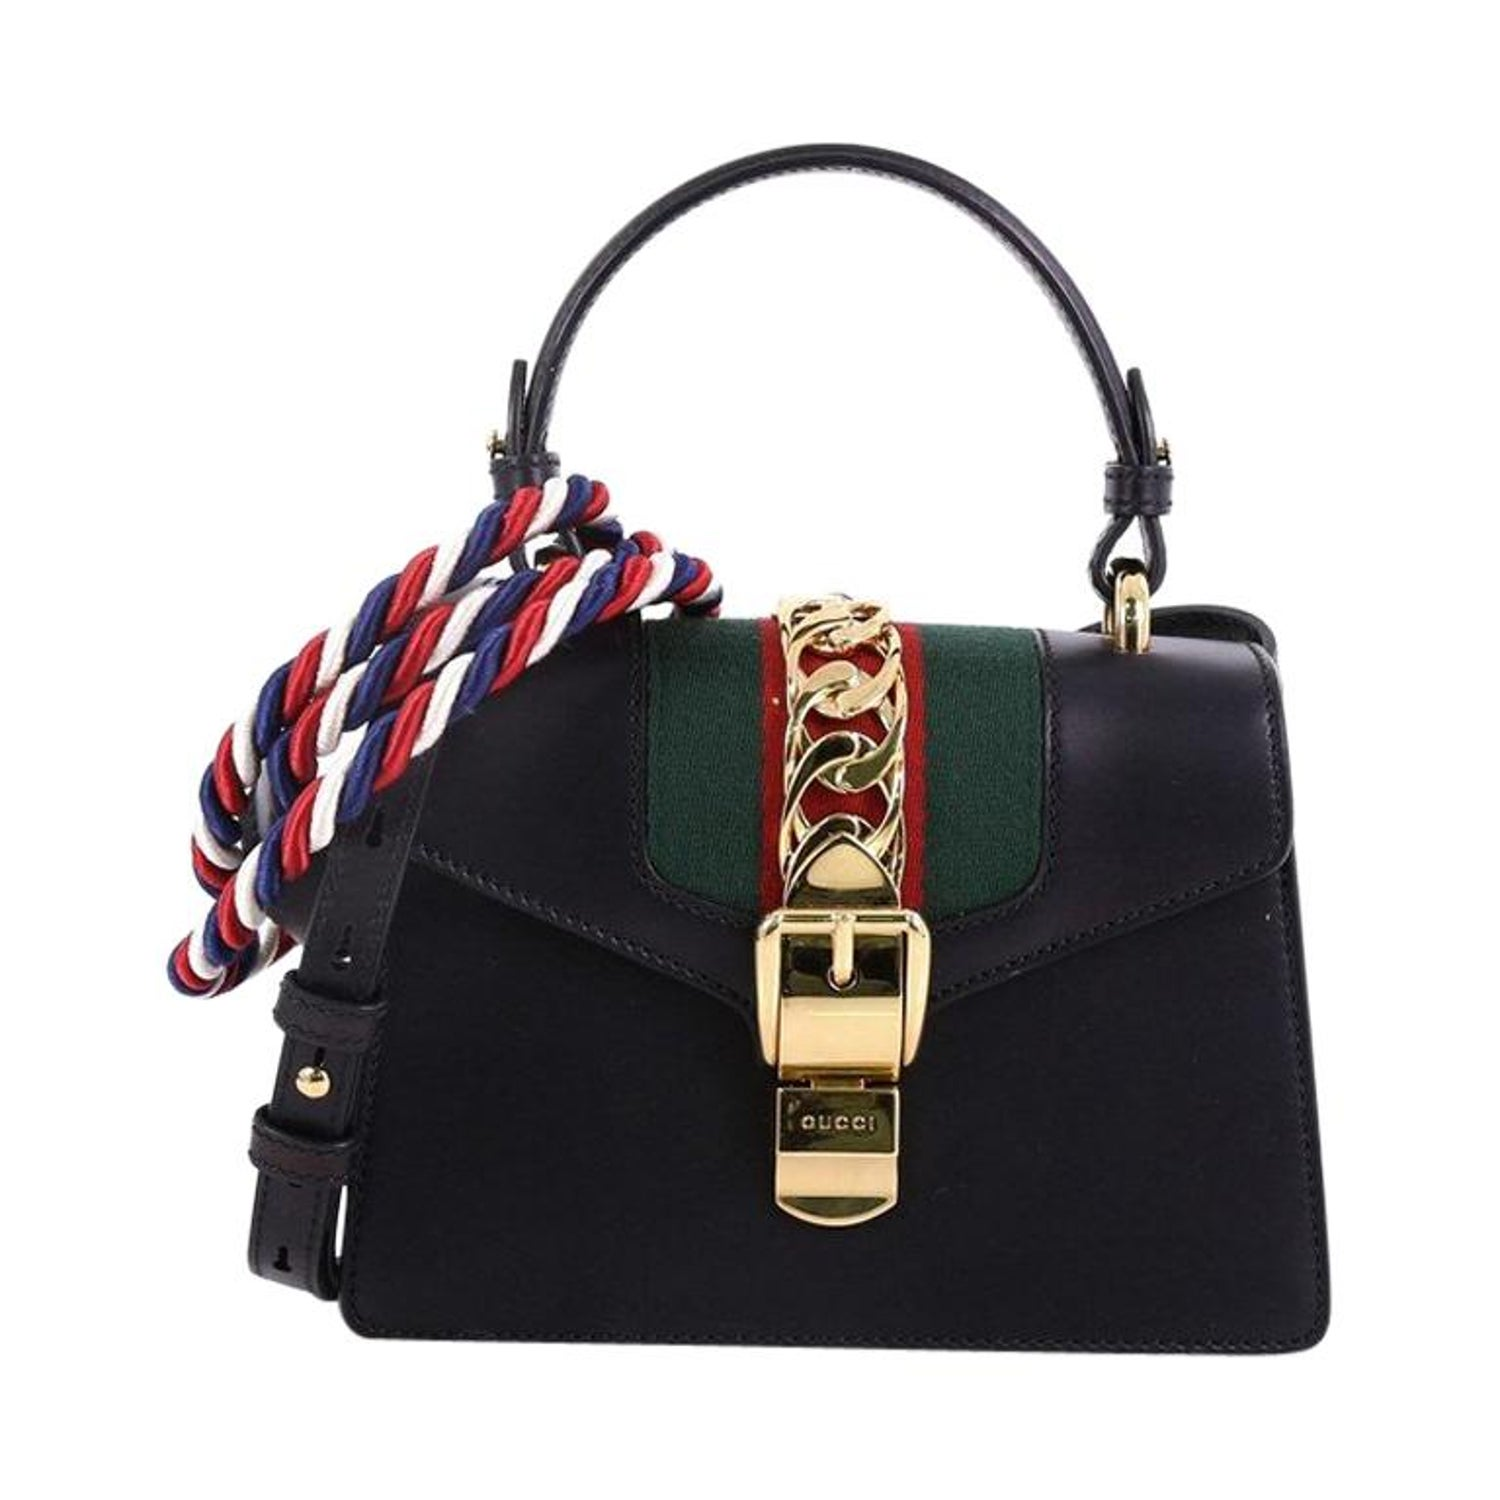 1998fcf31 Gucci Sylvie Top Handle Bag Leather Mini at 1stdibs